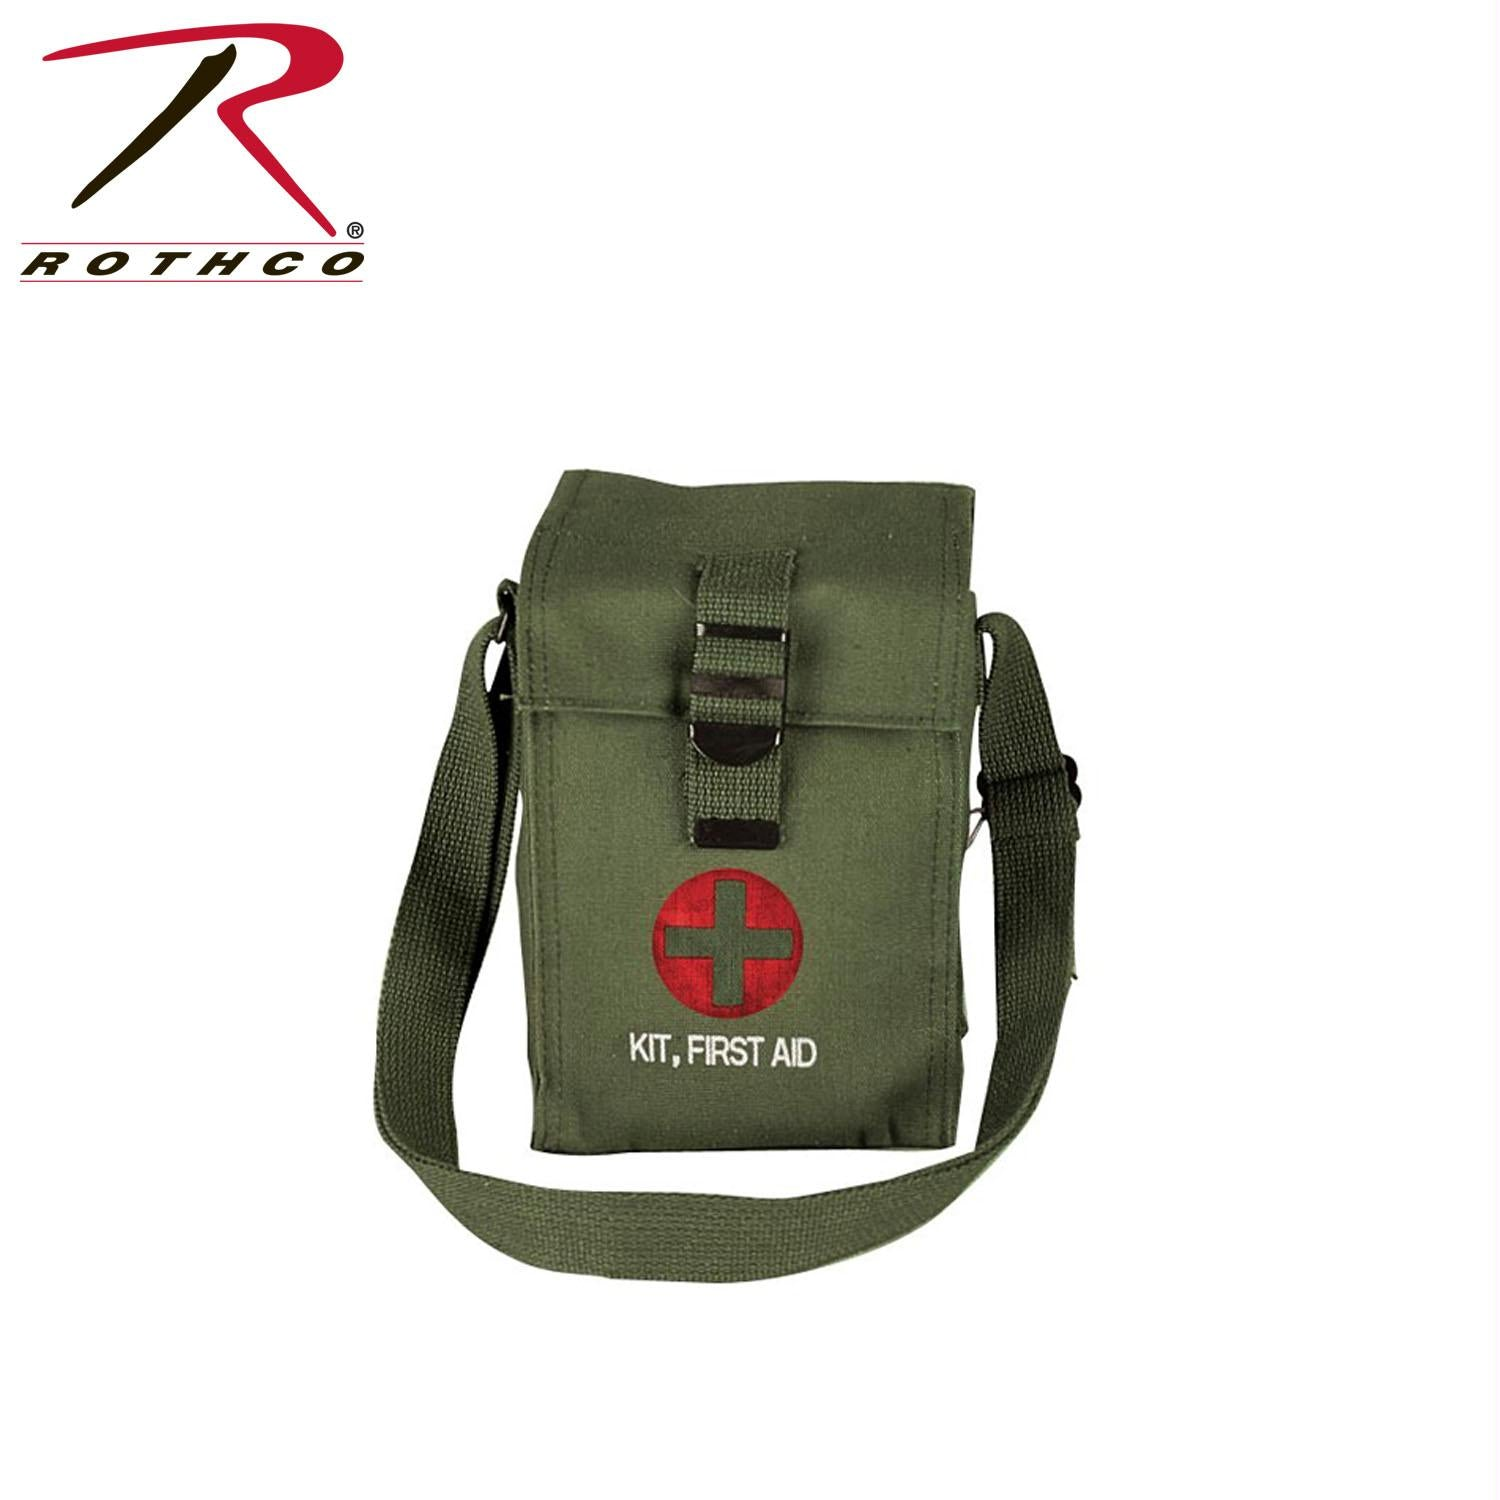 Rothco Platoon Leader's First Aid Kit